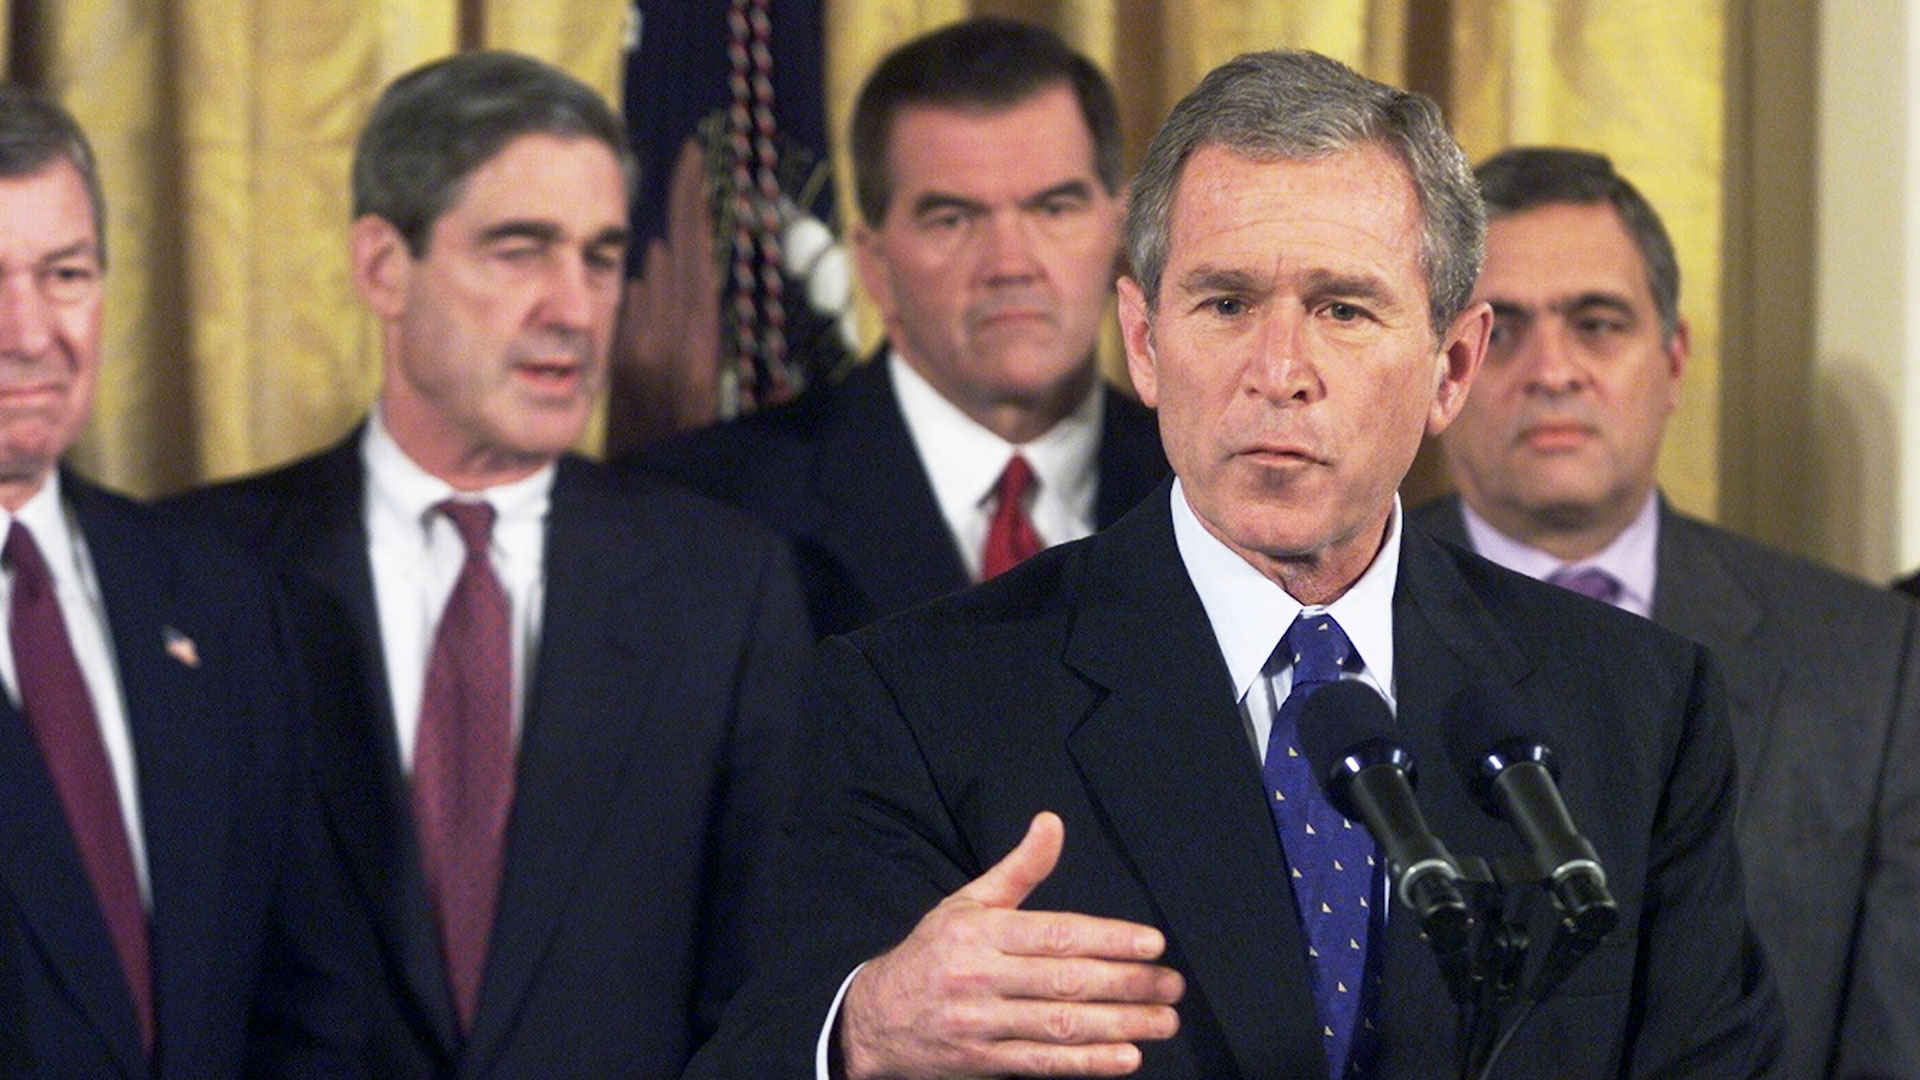 Here's Why the Patriot Act Is So Controversial